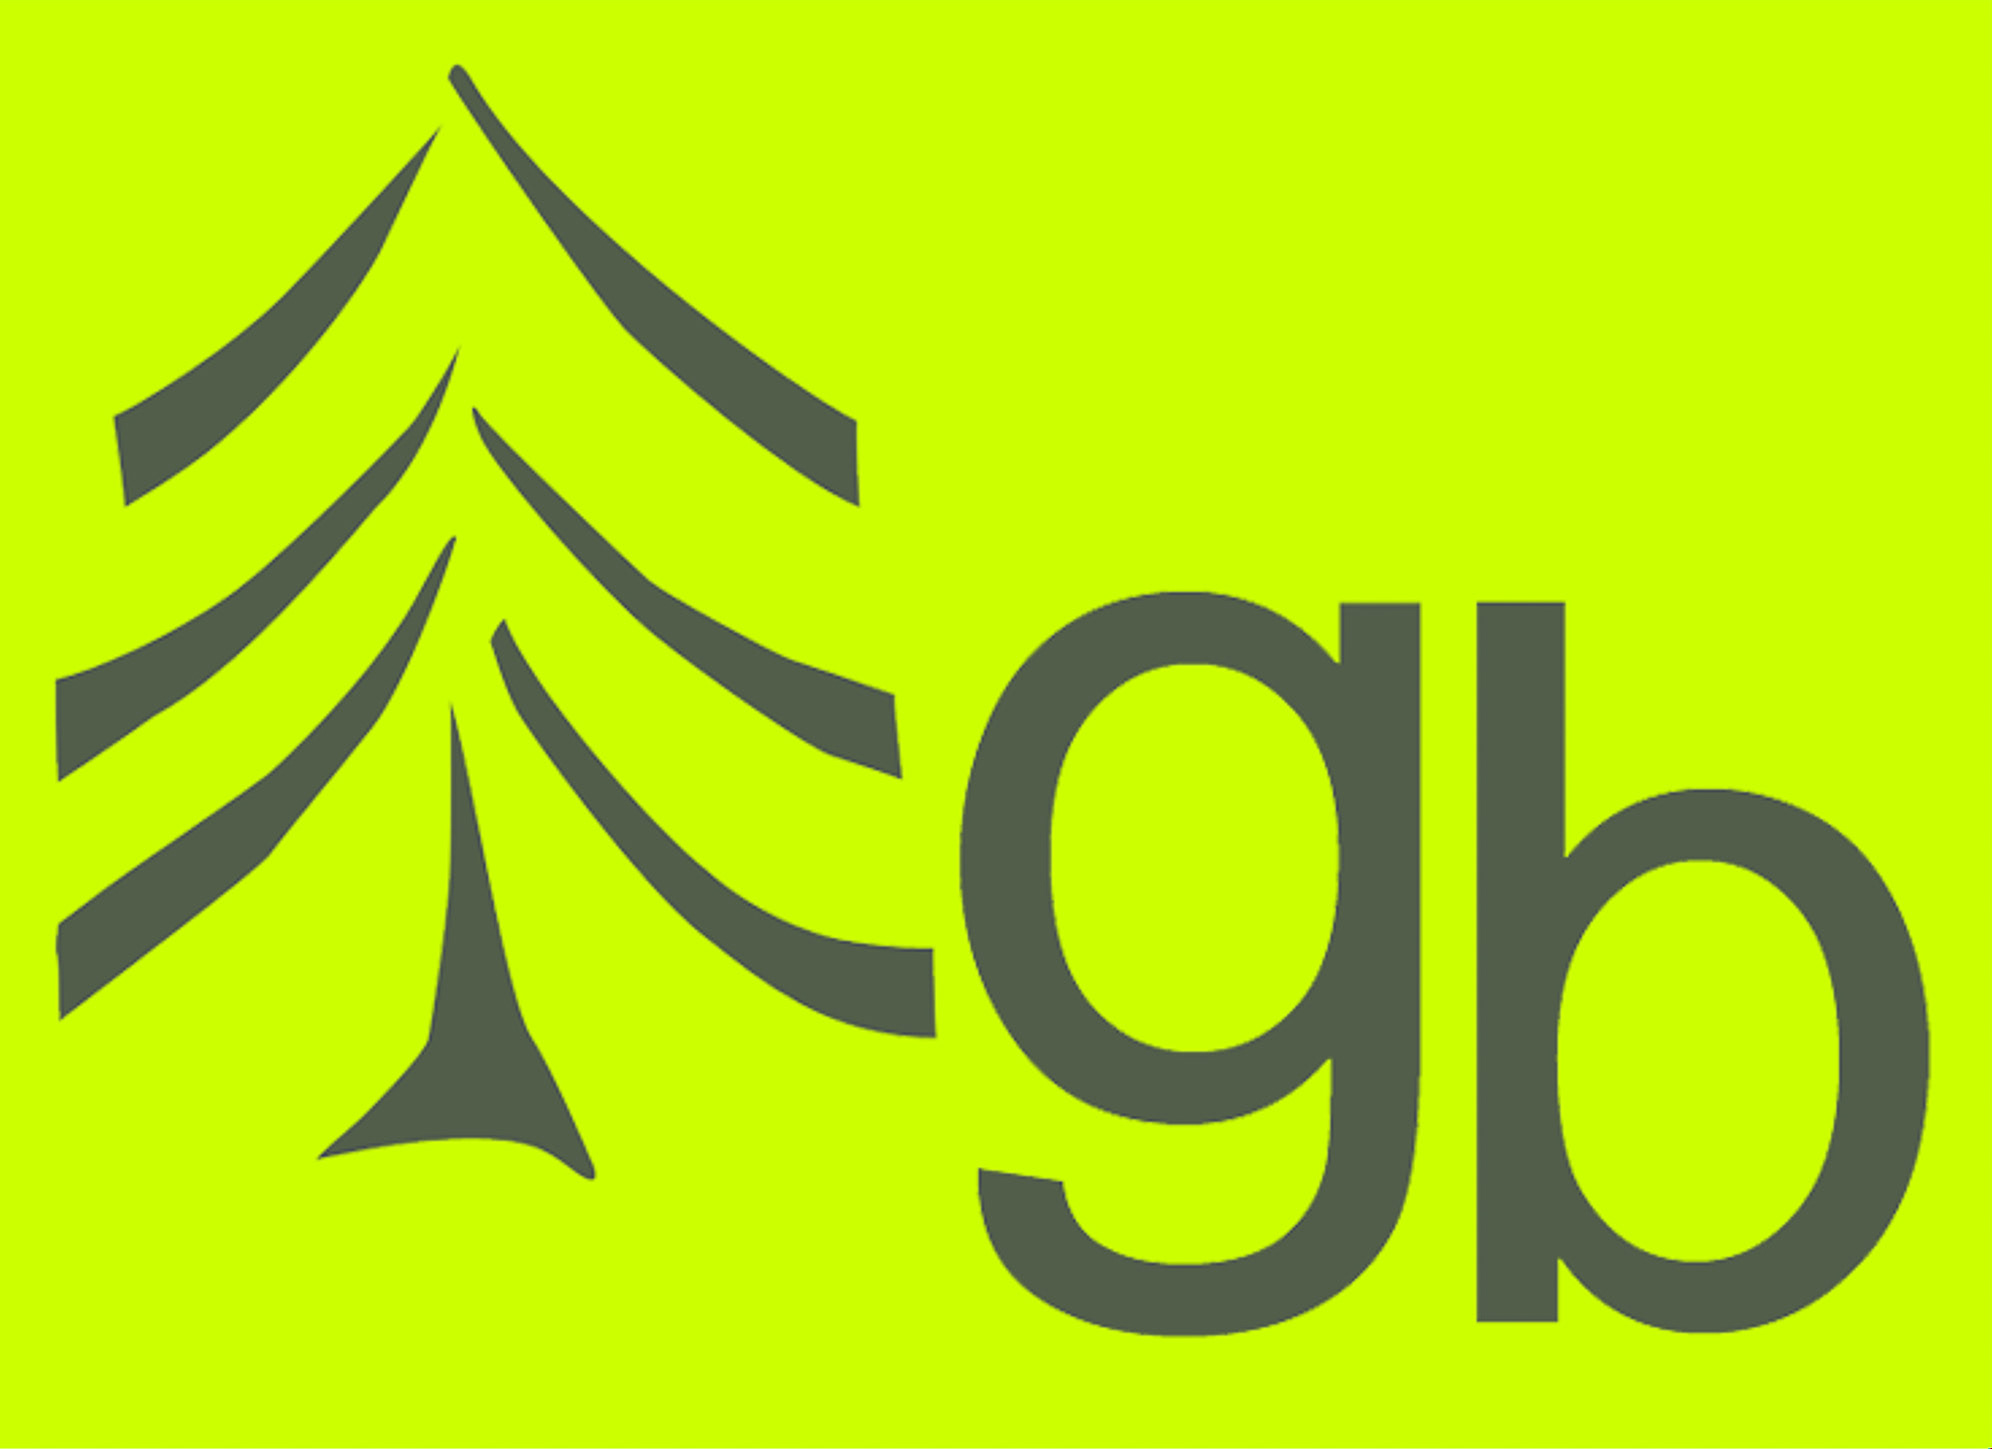 Gordon Baddeley logo